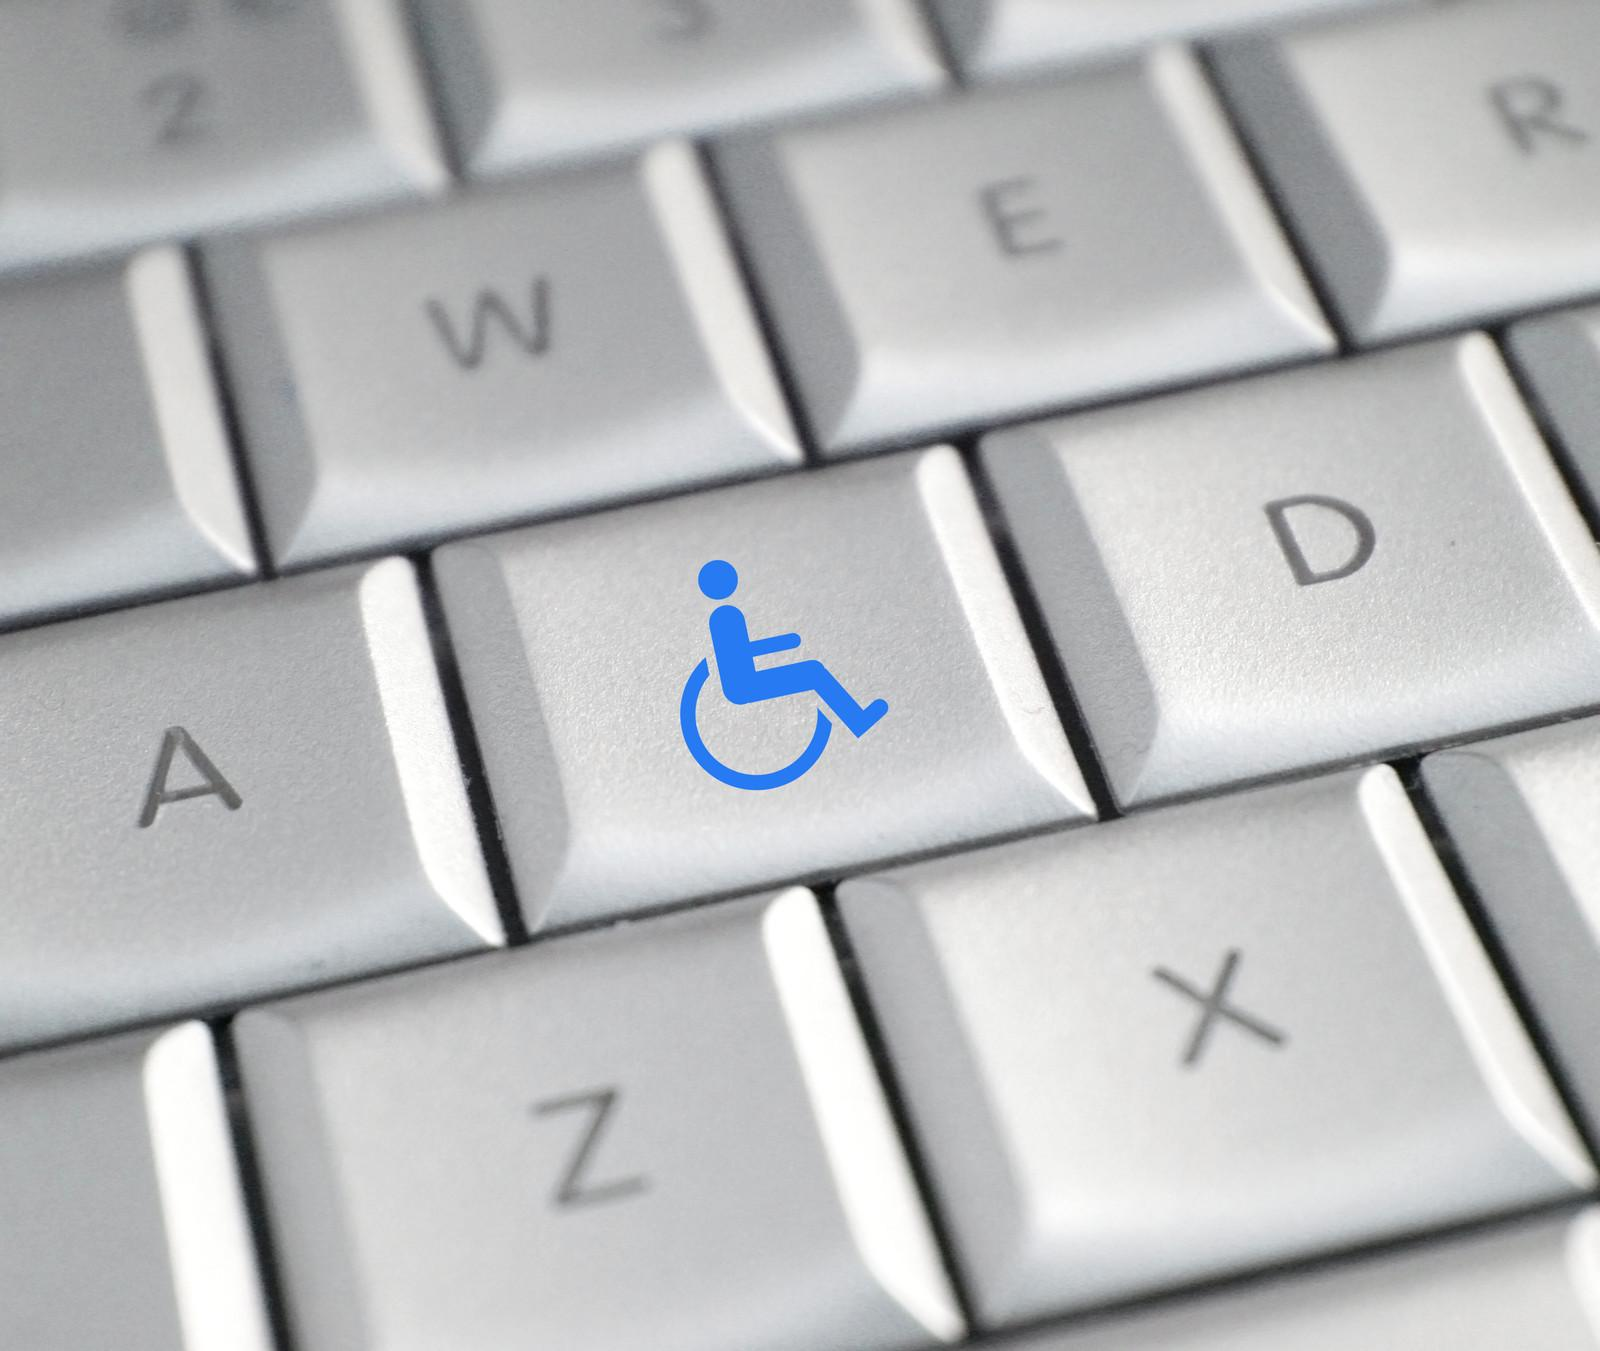 AODA and WCAG: 2021 Web Accessibility Standards Deadline for Ontario